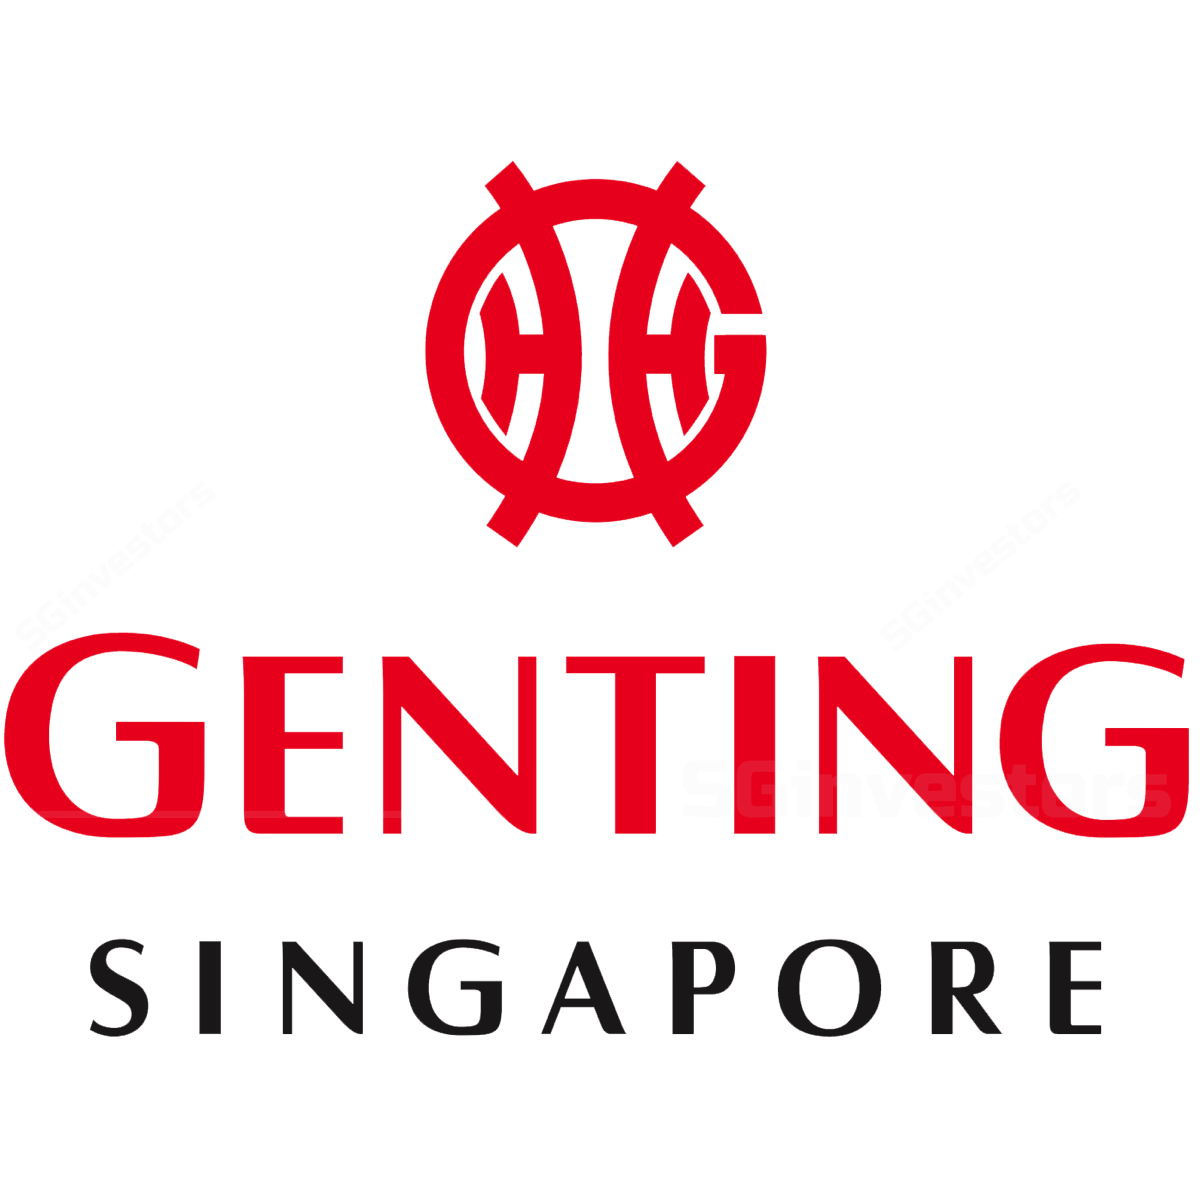 Genting Singapore - Maybank Kim Eng Research 2018-08-06: 'unlucky' Quarter; Further Upside May Be Limited